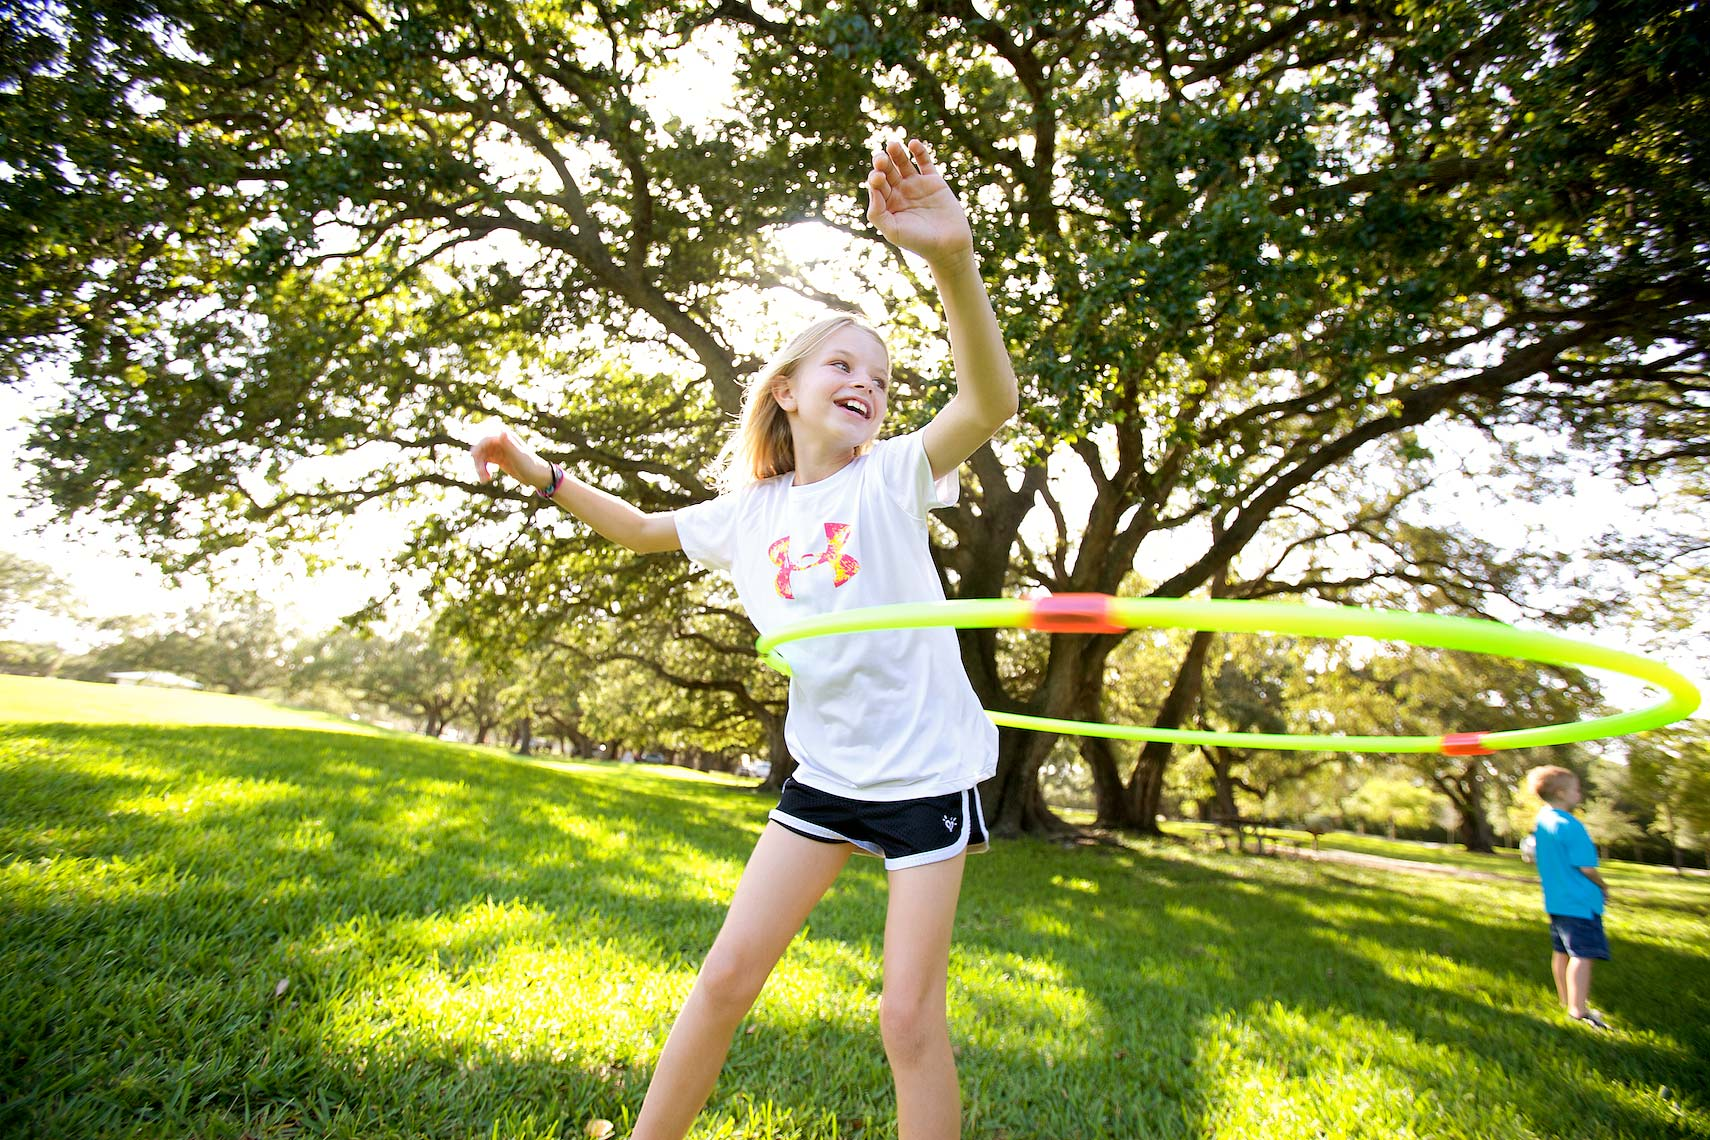 young girl using hula-hoop in park_2166_Robert-Holland.jpg